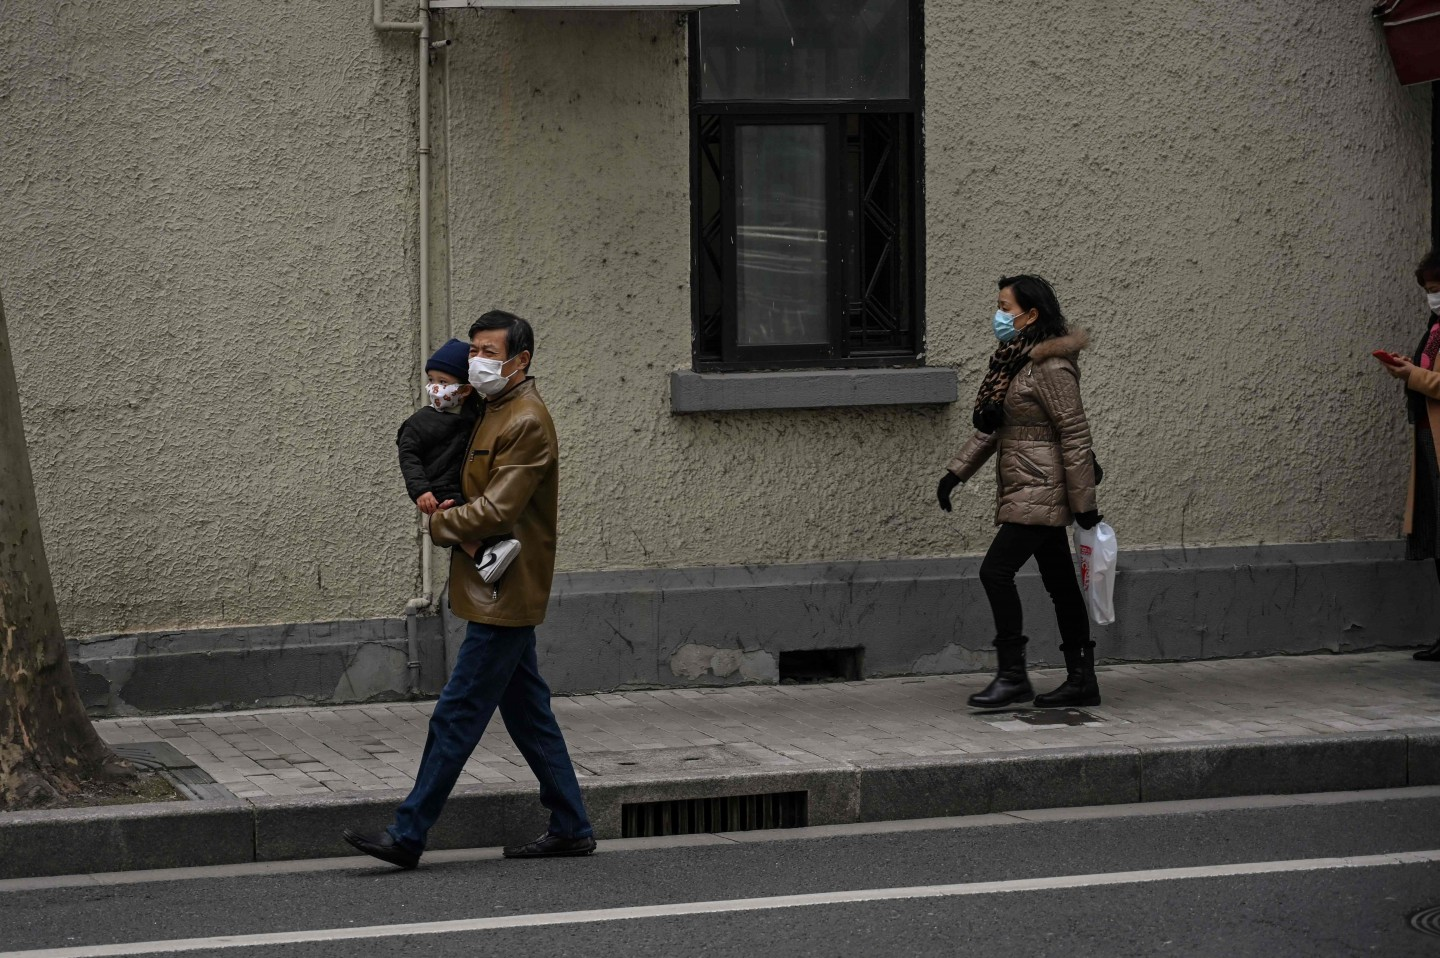 People wearing face masks walk on a street in Shanghai on 3 March 2020. (Hector Retamal/AFP)